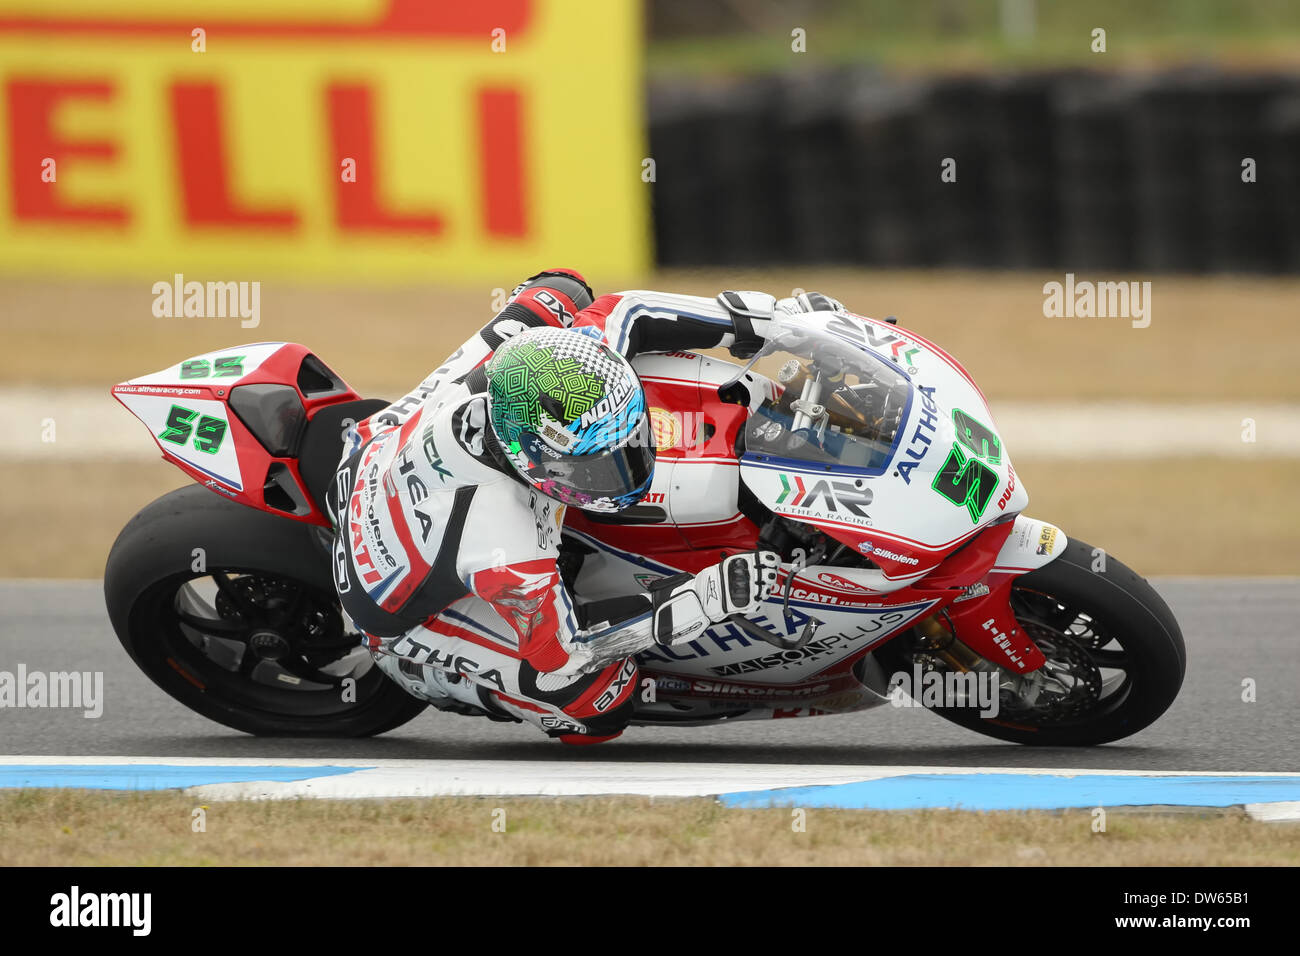 Althea Ducati rider Niccolo Canepa during free practice at the Phillip Island round of the 2014 FIM World Superbike Stock Photo